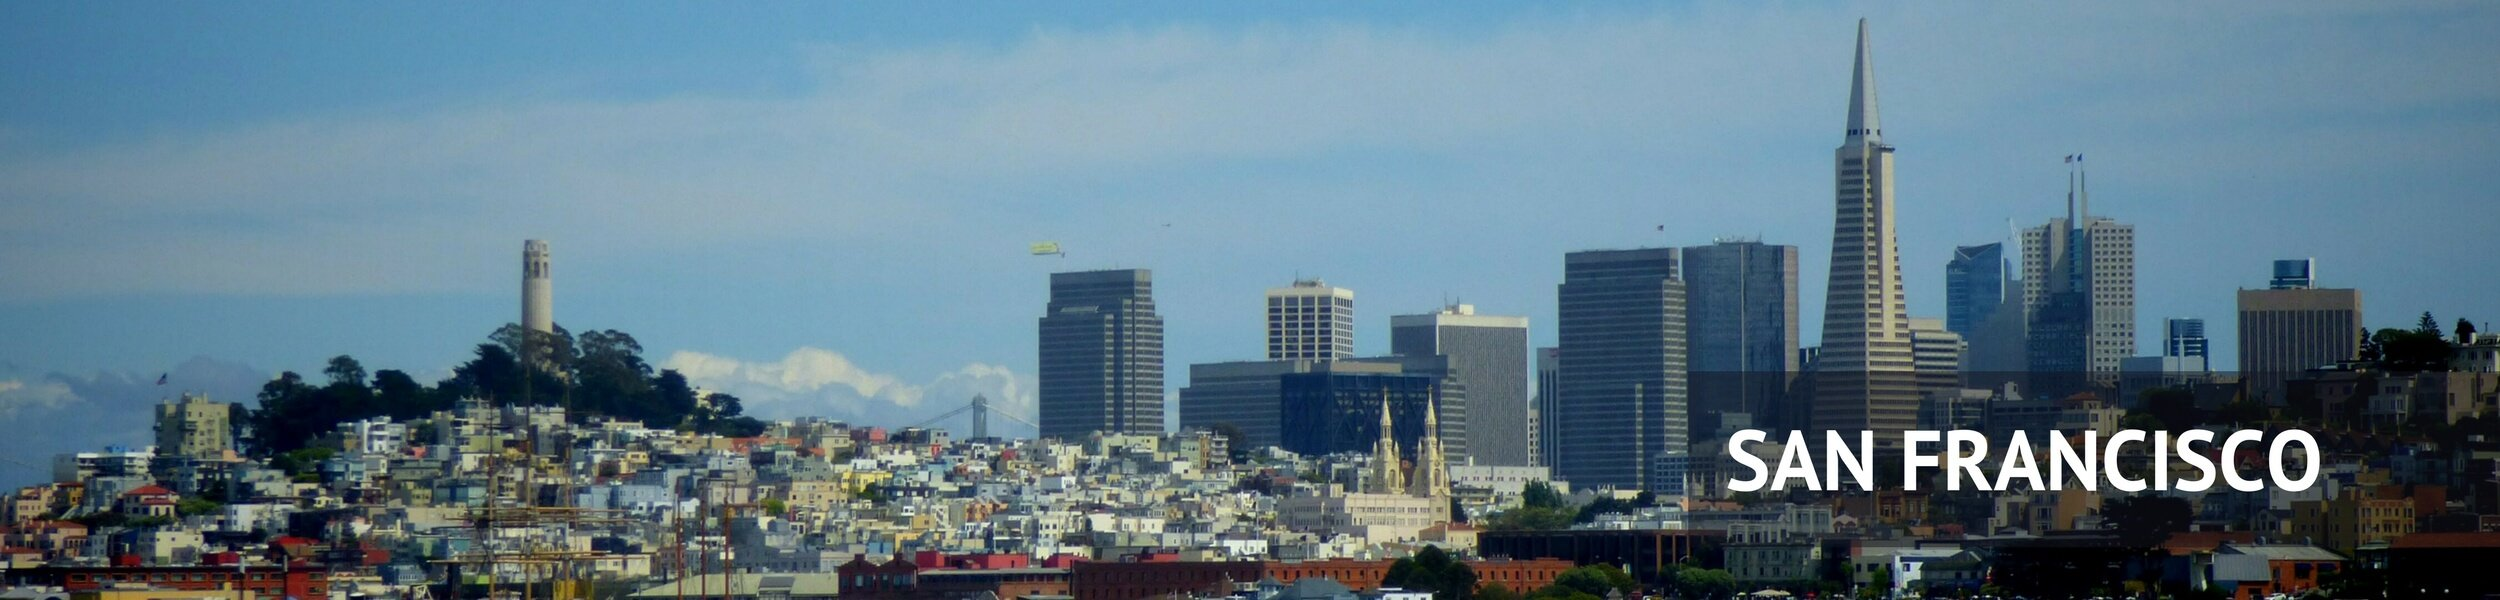 San Francisco Header